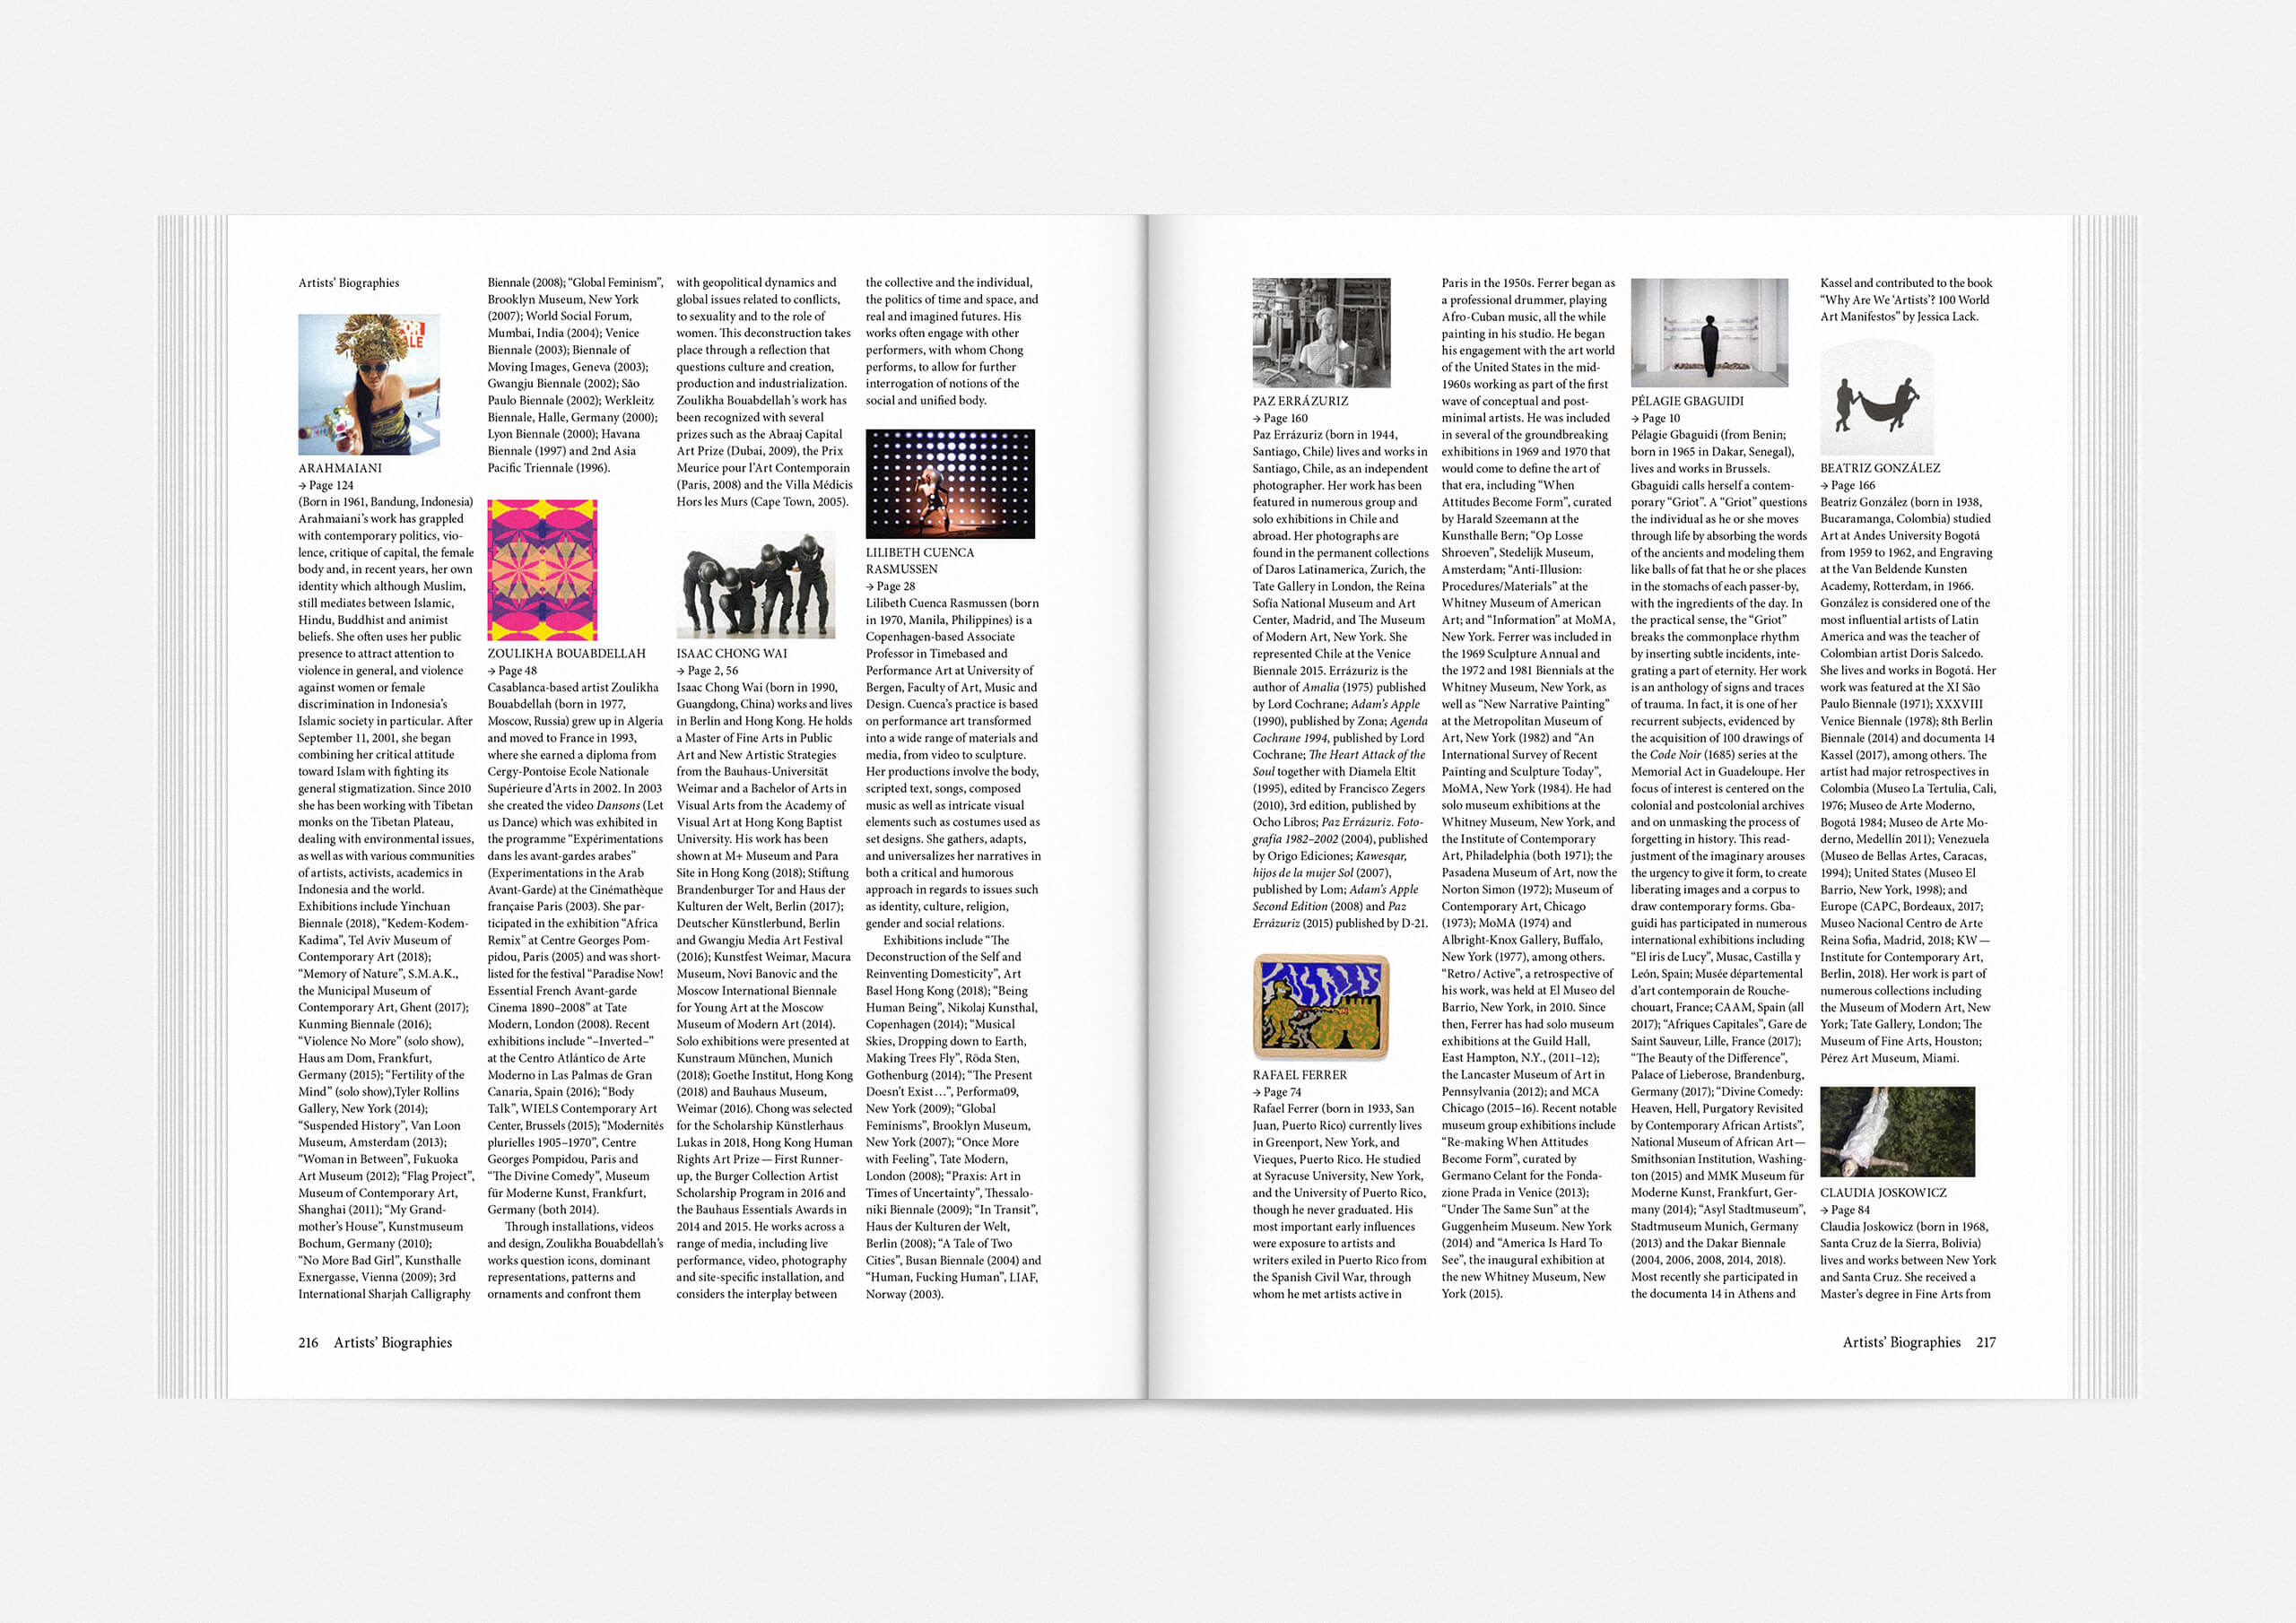 http://www.neuegestaltung.de/media/pages/clients/protocollum-issue-no-05/484c1c8592-1597415145/protocollum-5-page-216217-ng.jpg